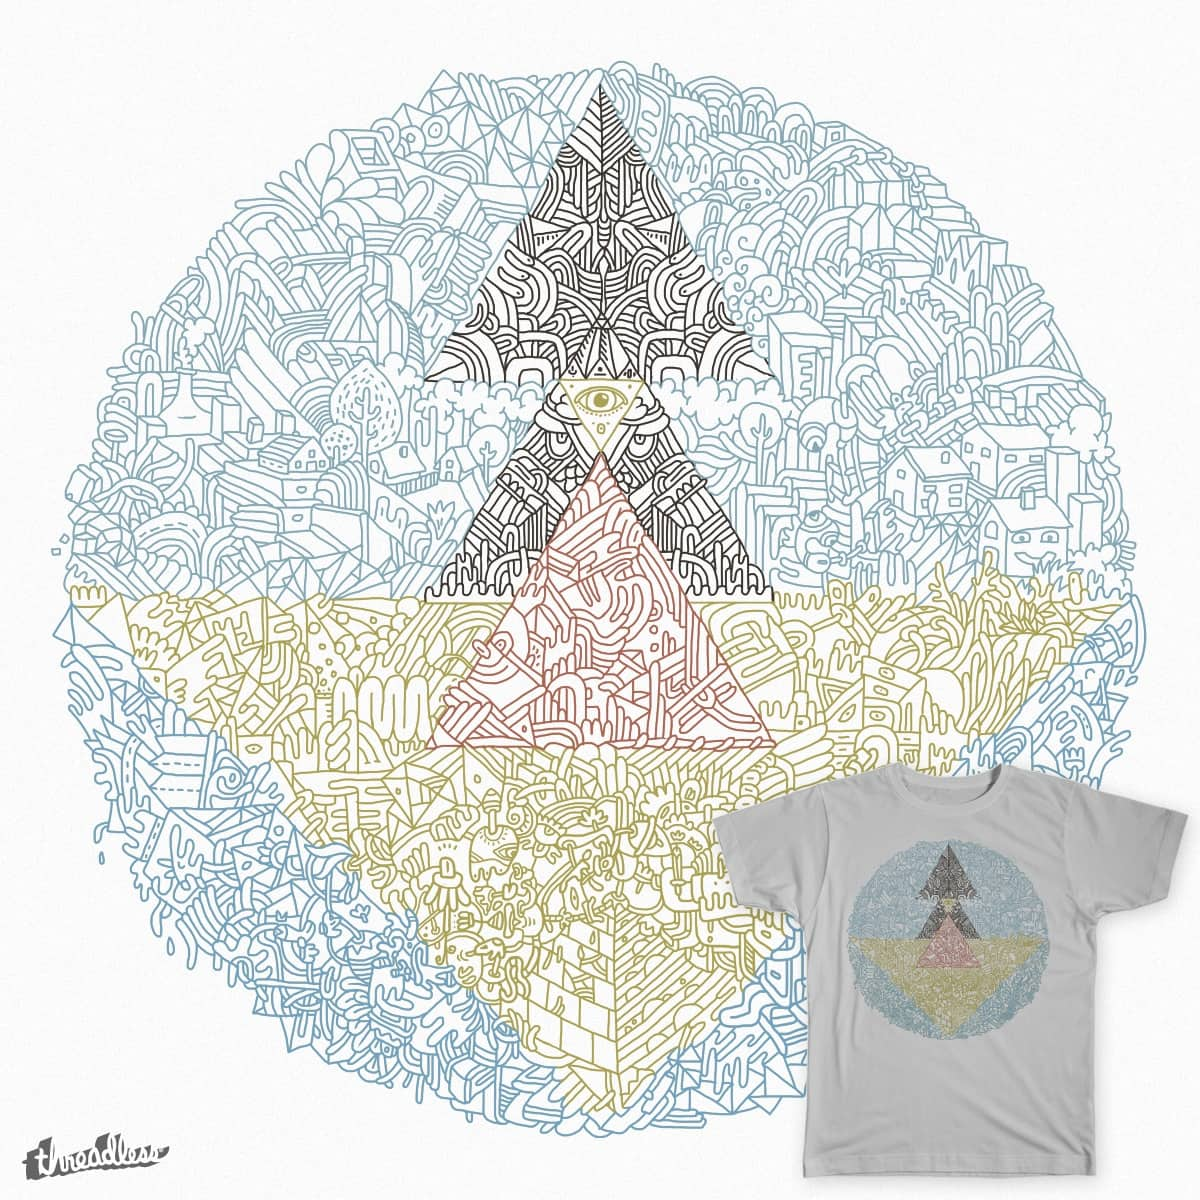 Growing dreams by camellie on Threadless